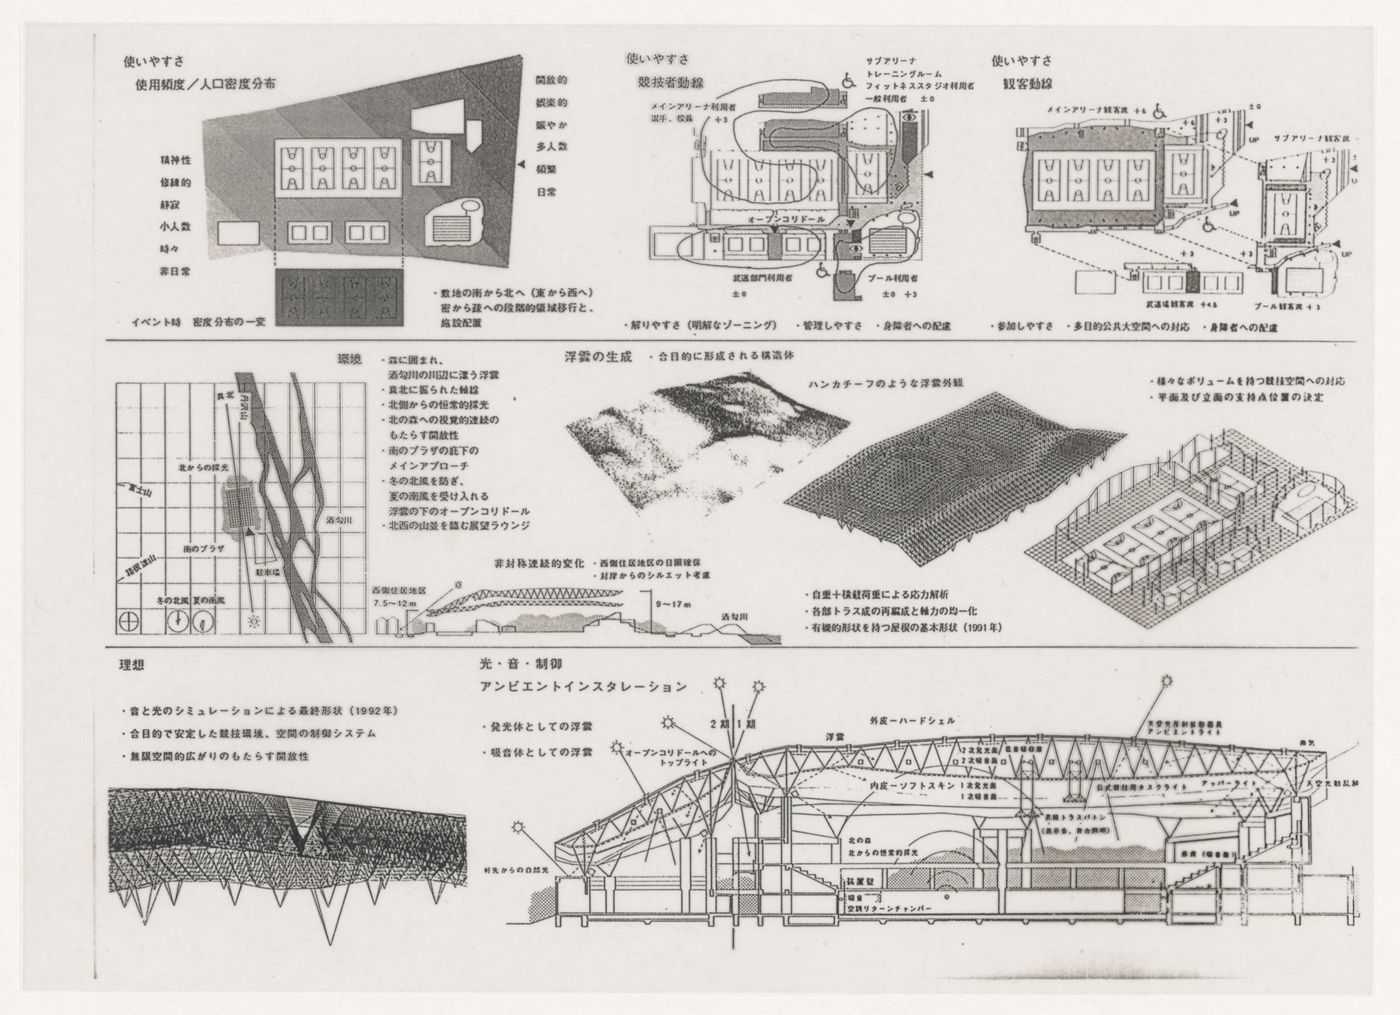 Plans, perspectives and sections for Odawara Municipal Sports Complex, Odawara, Japan